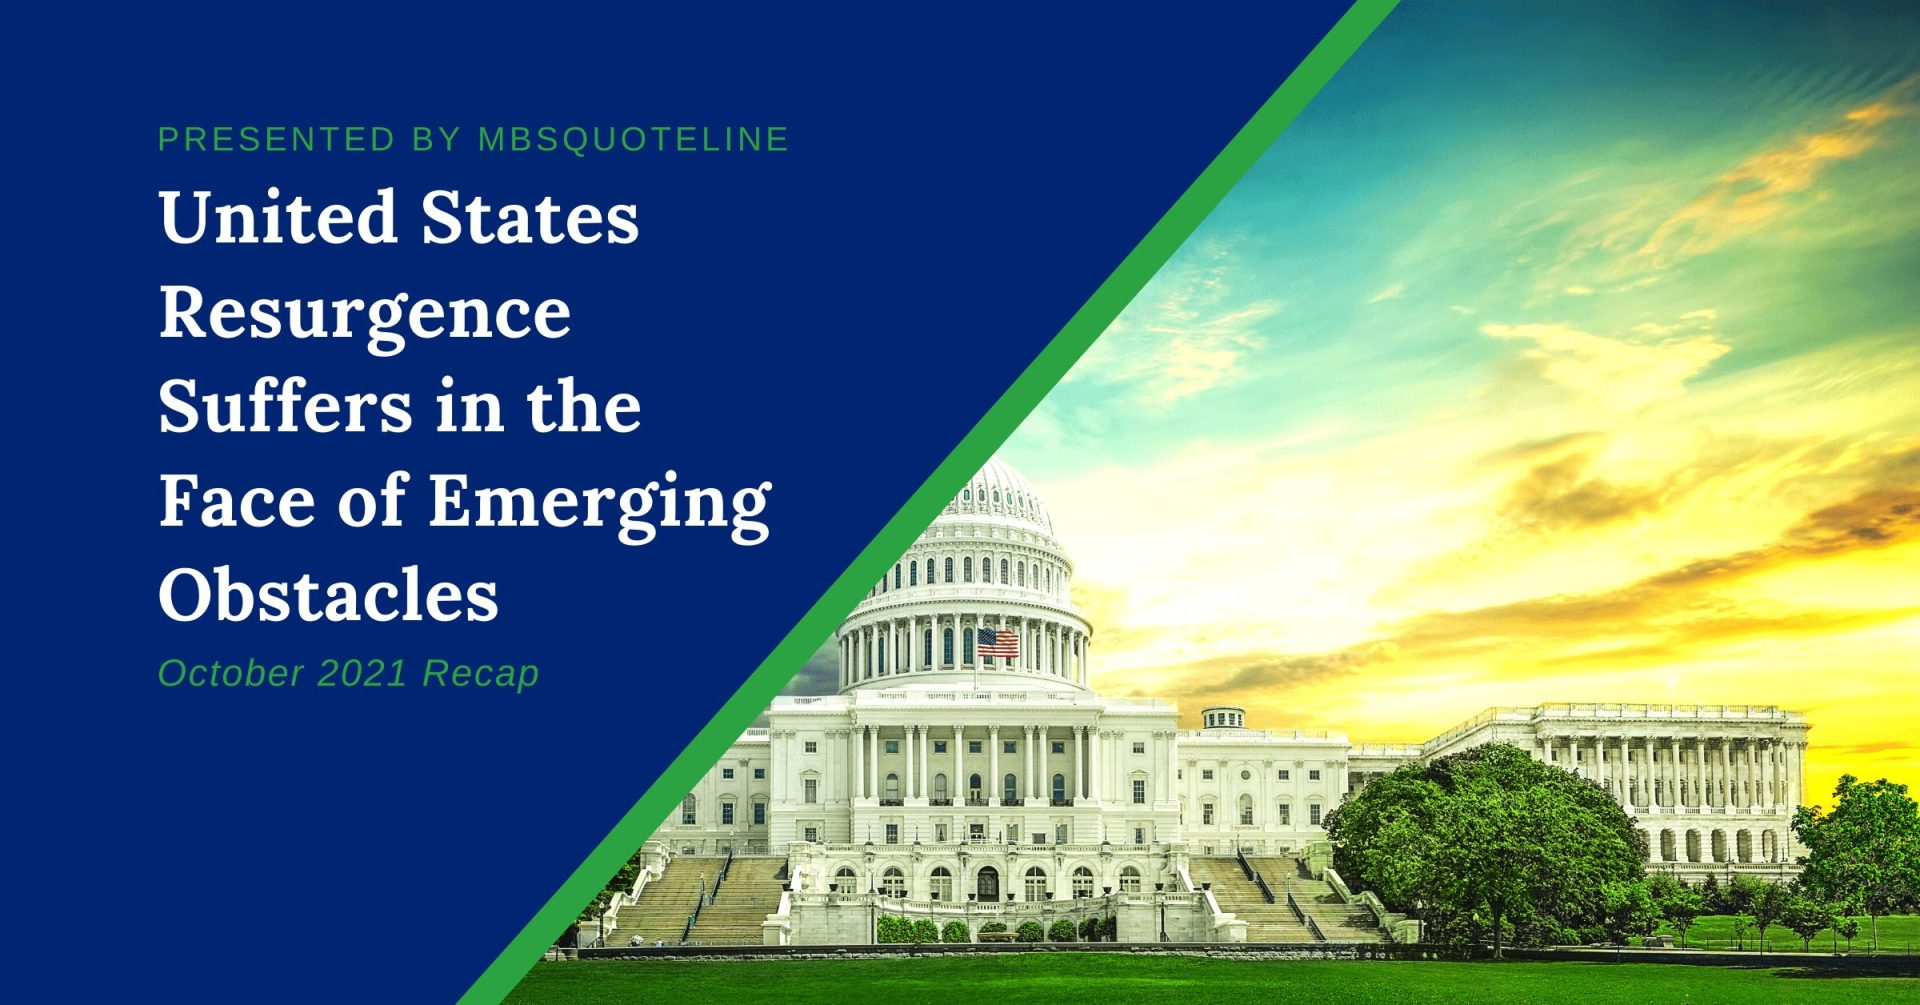 United States Resurgence Suffers in the Face of Emerging Obstacles mbsquoteline